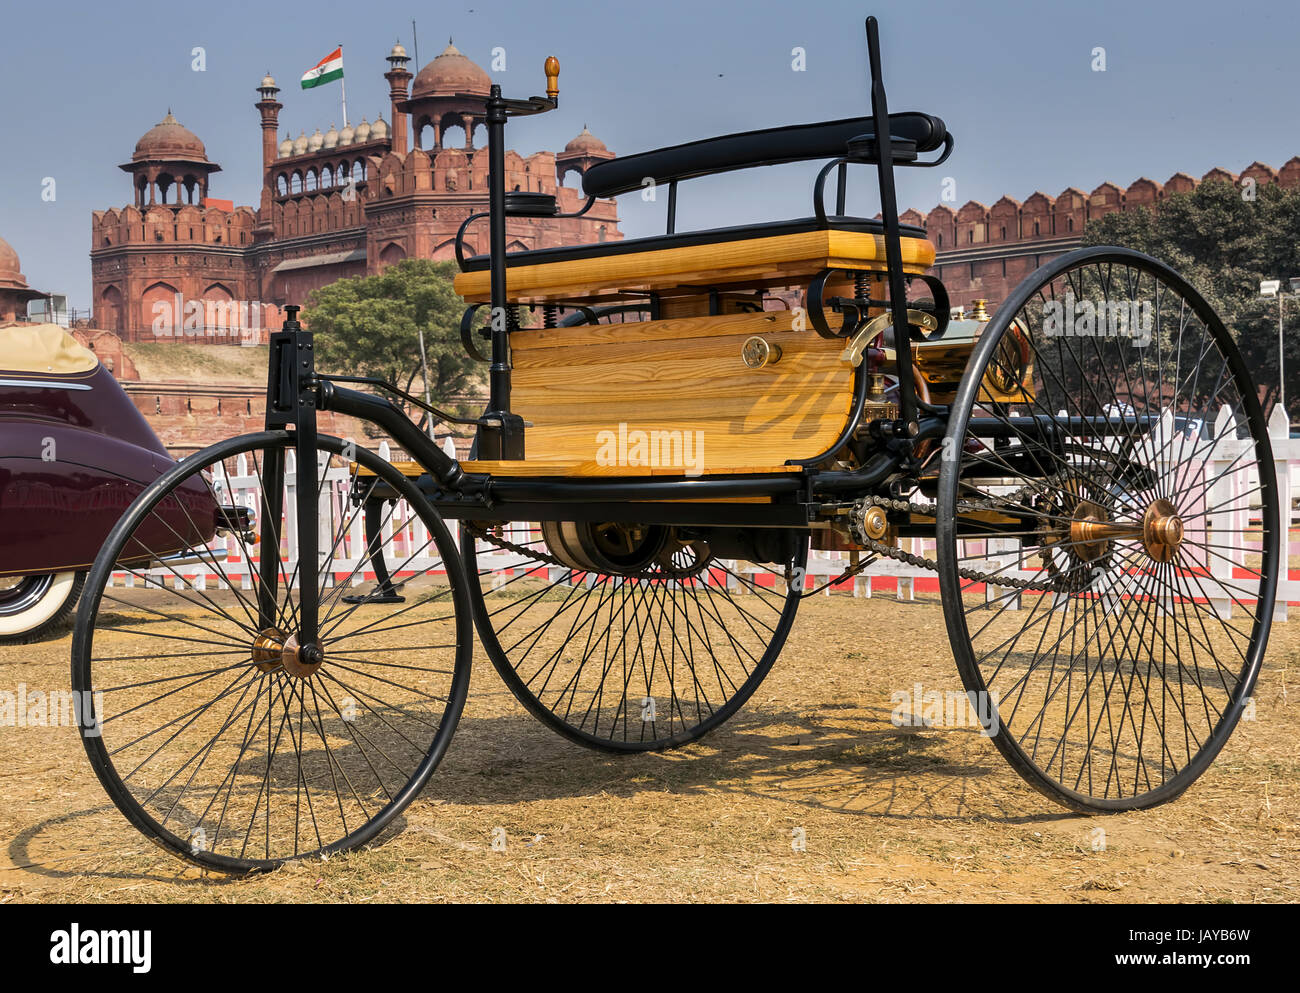 New Delhi, India - February 6, 2016: Benz Patent Motorwagen (or motorcar) 1886 worlds first petrol-fuelled automobile - Stock Image